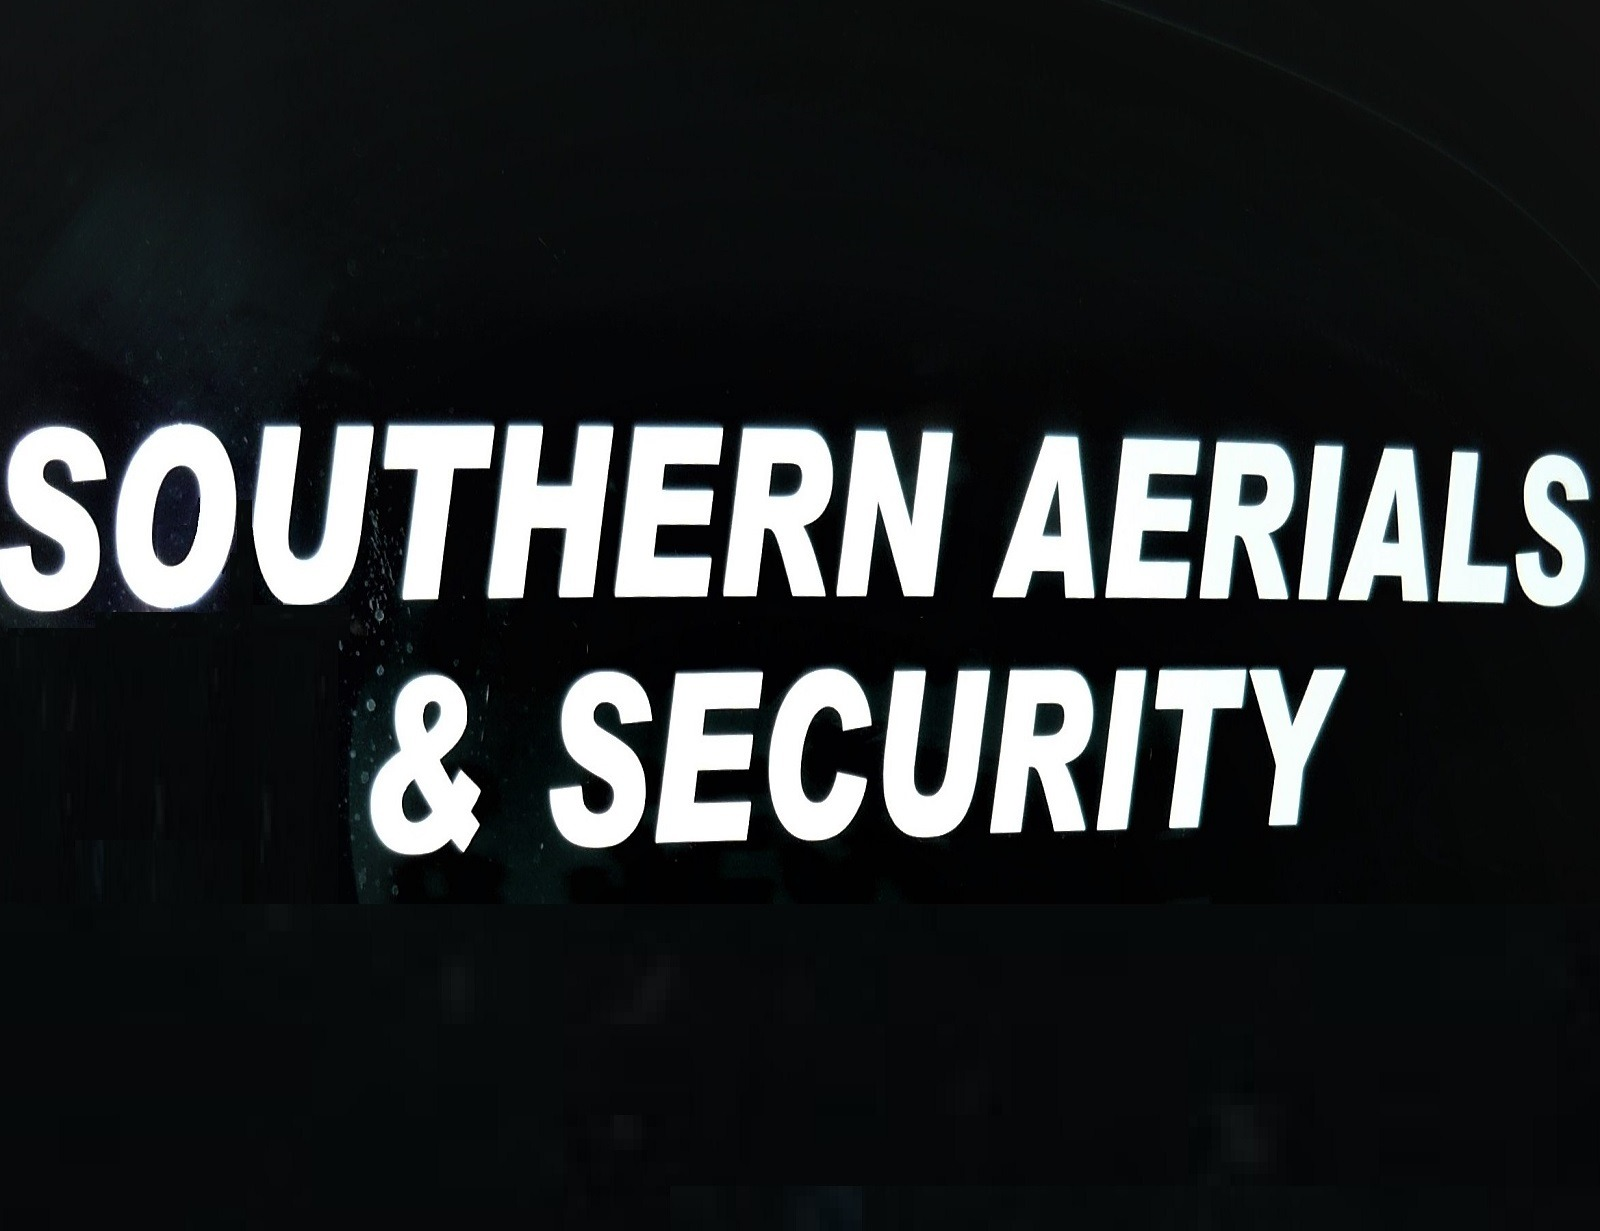 Southern Aerials & Security